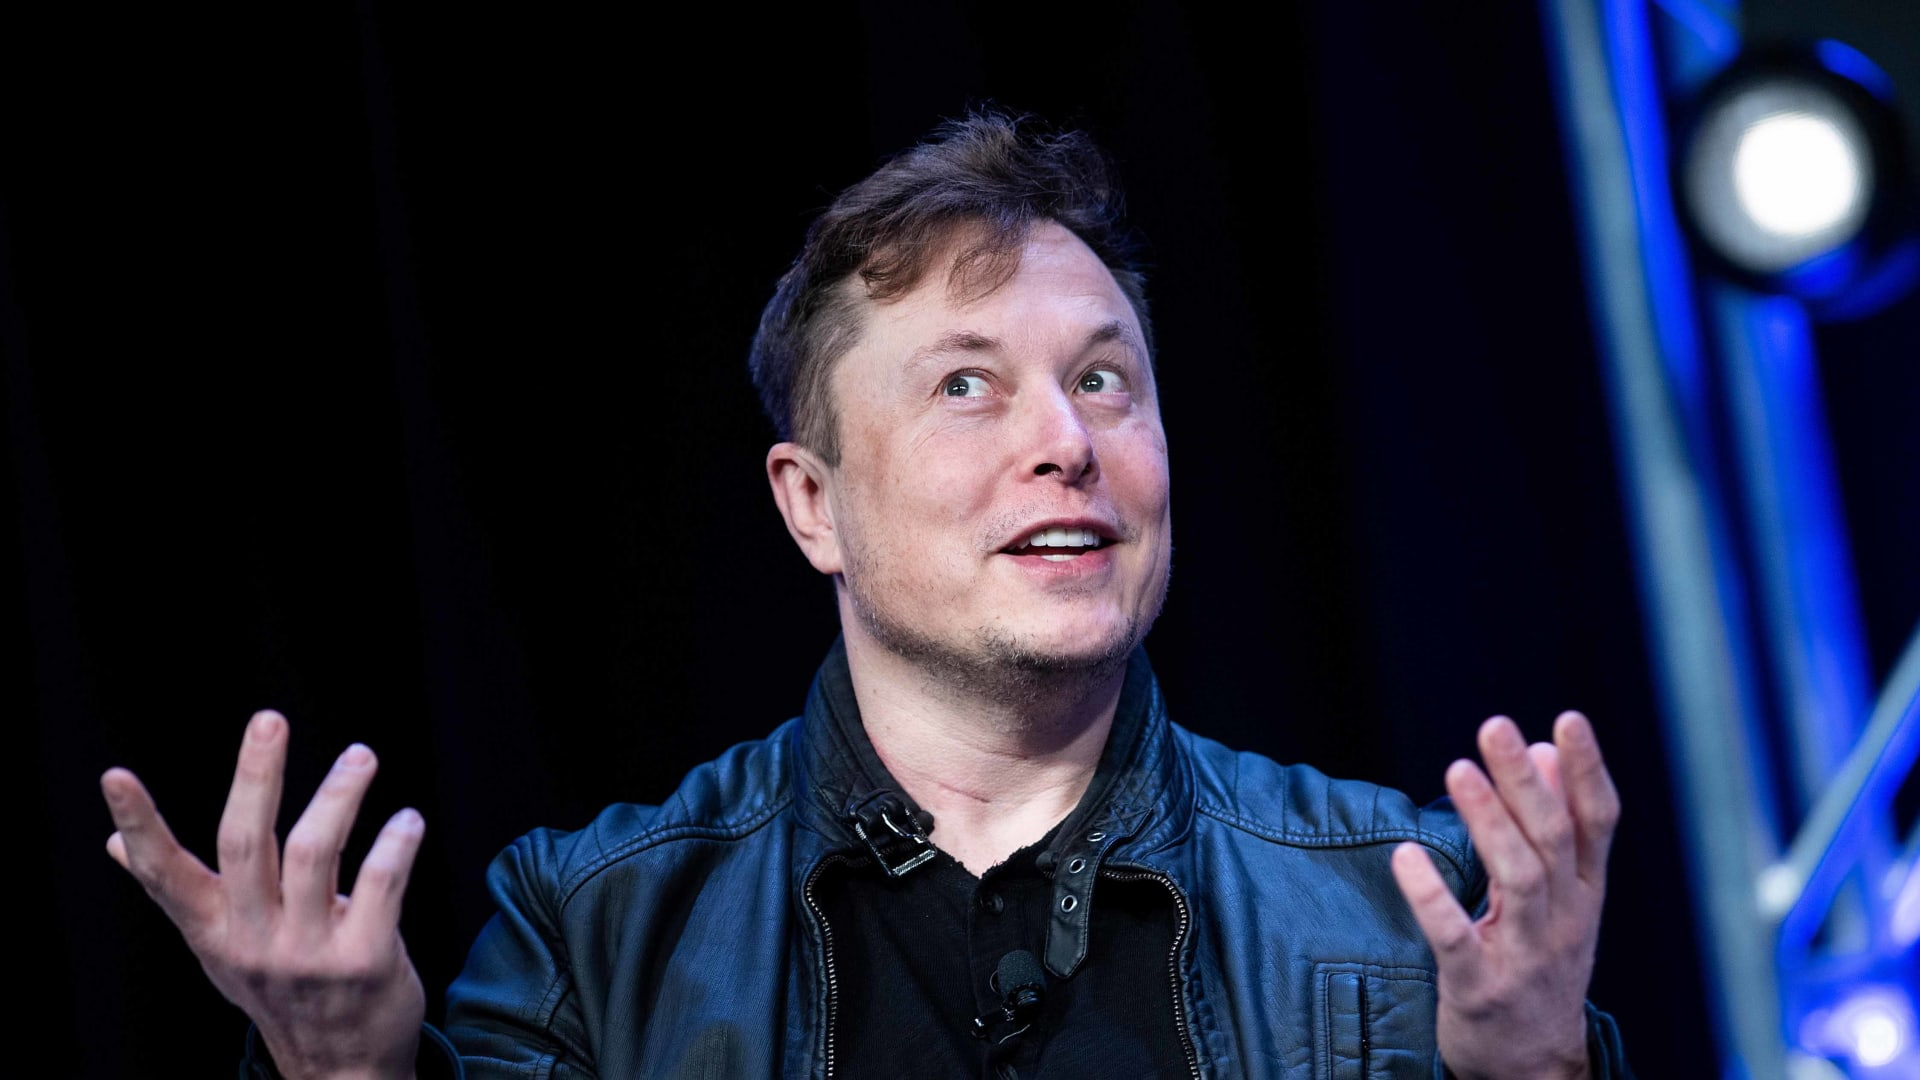 Elon Musk Is Hosting Saturday Night Live. These 3 Numbers Are the Real Reason Why